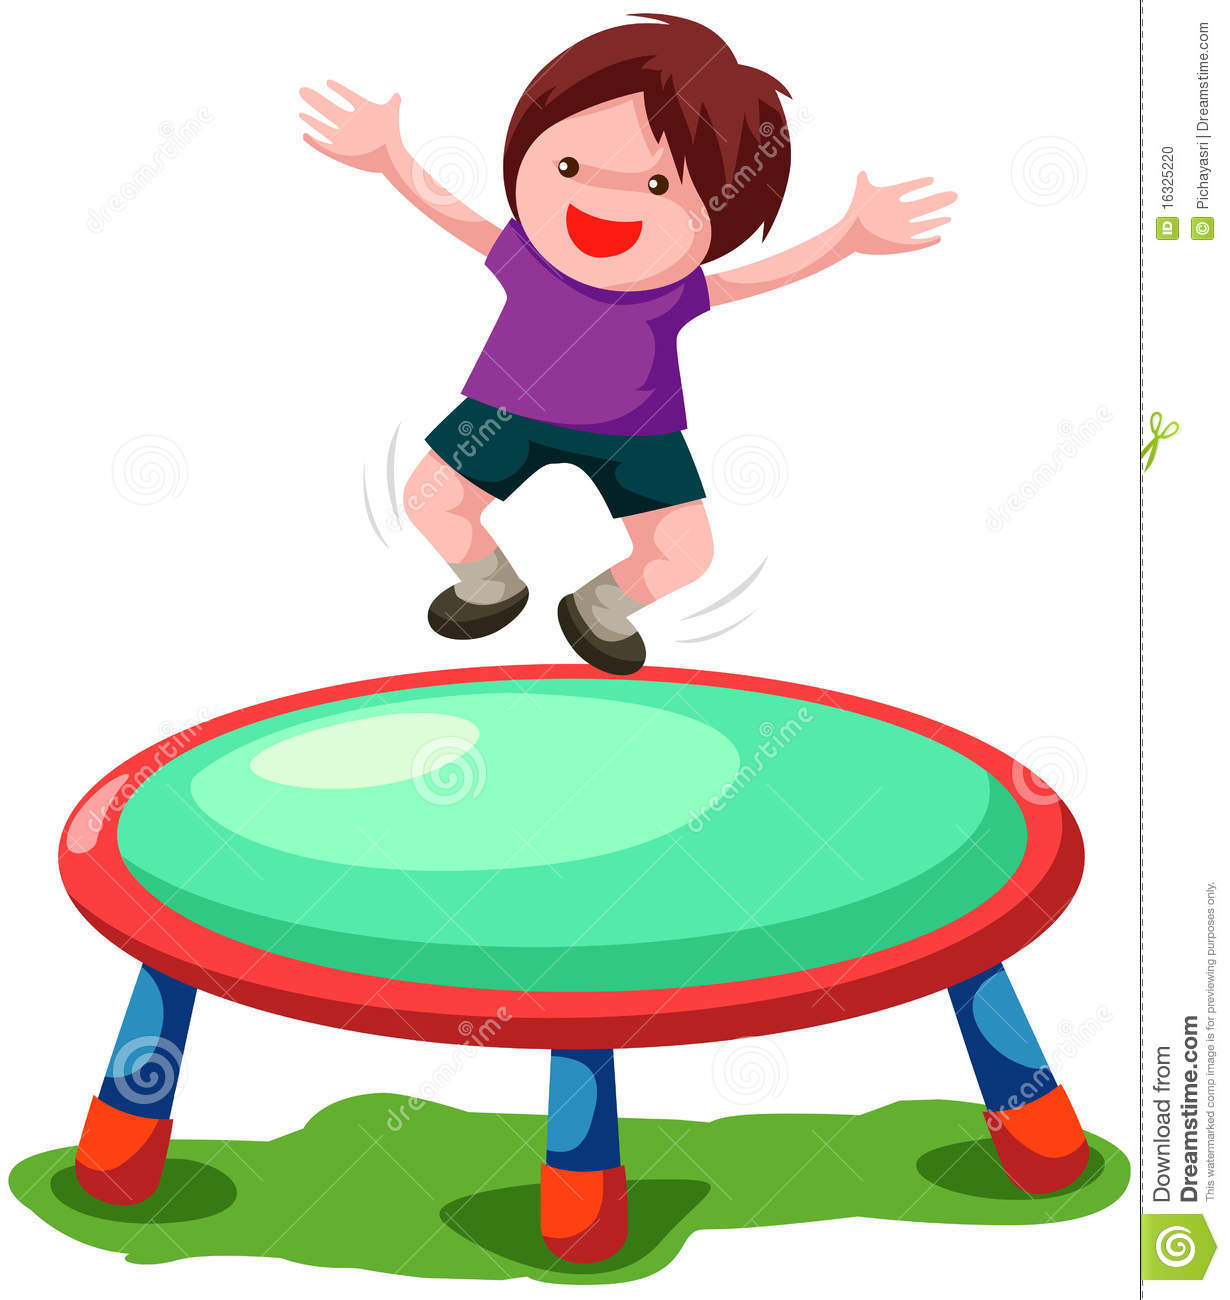 Jumping on trampoline clipart